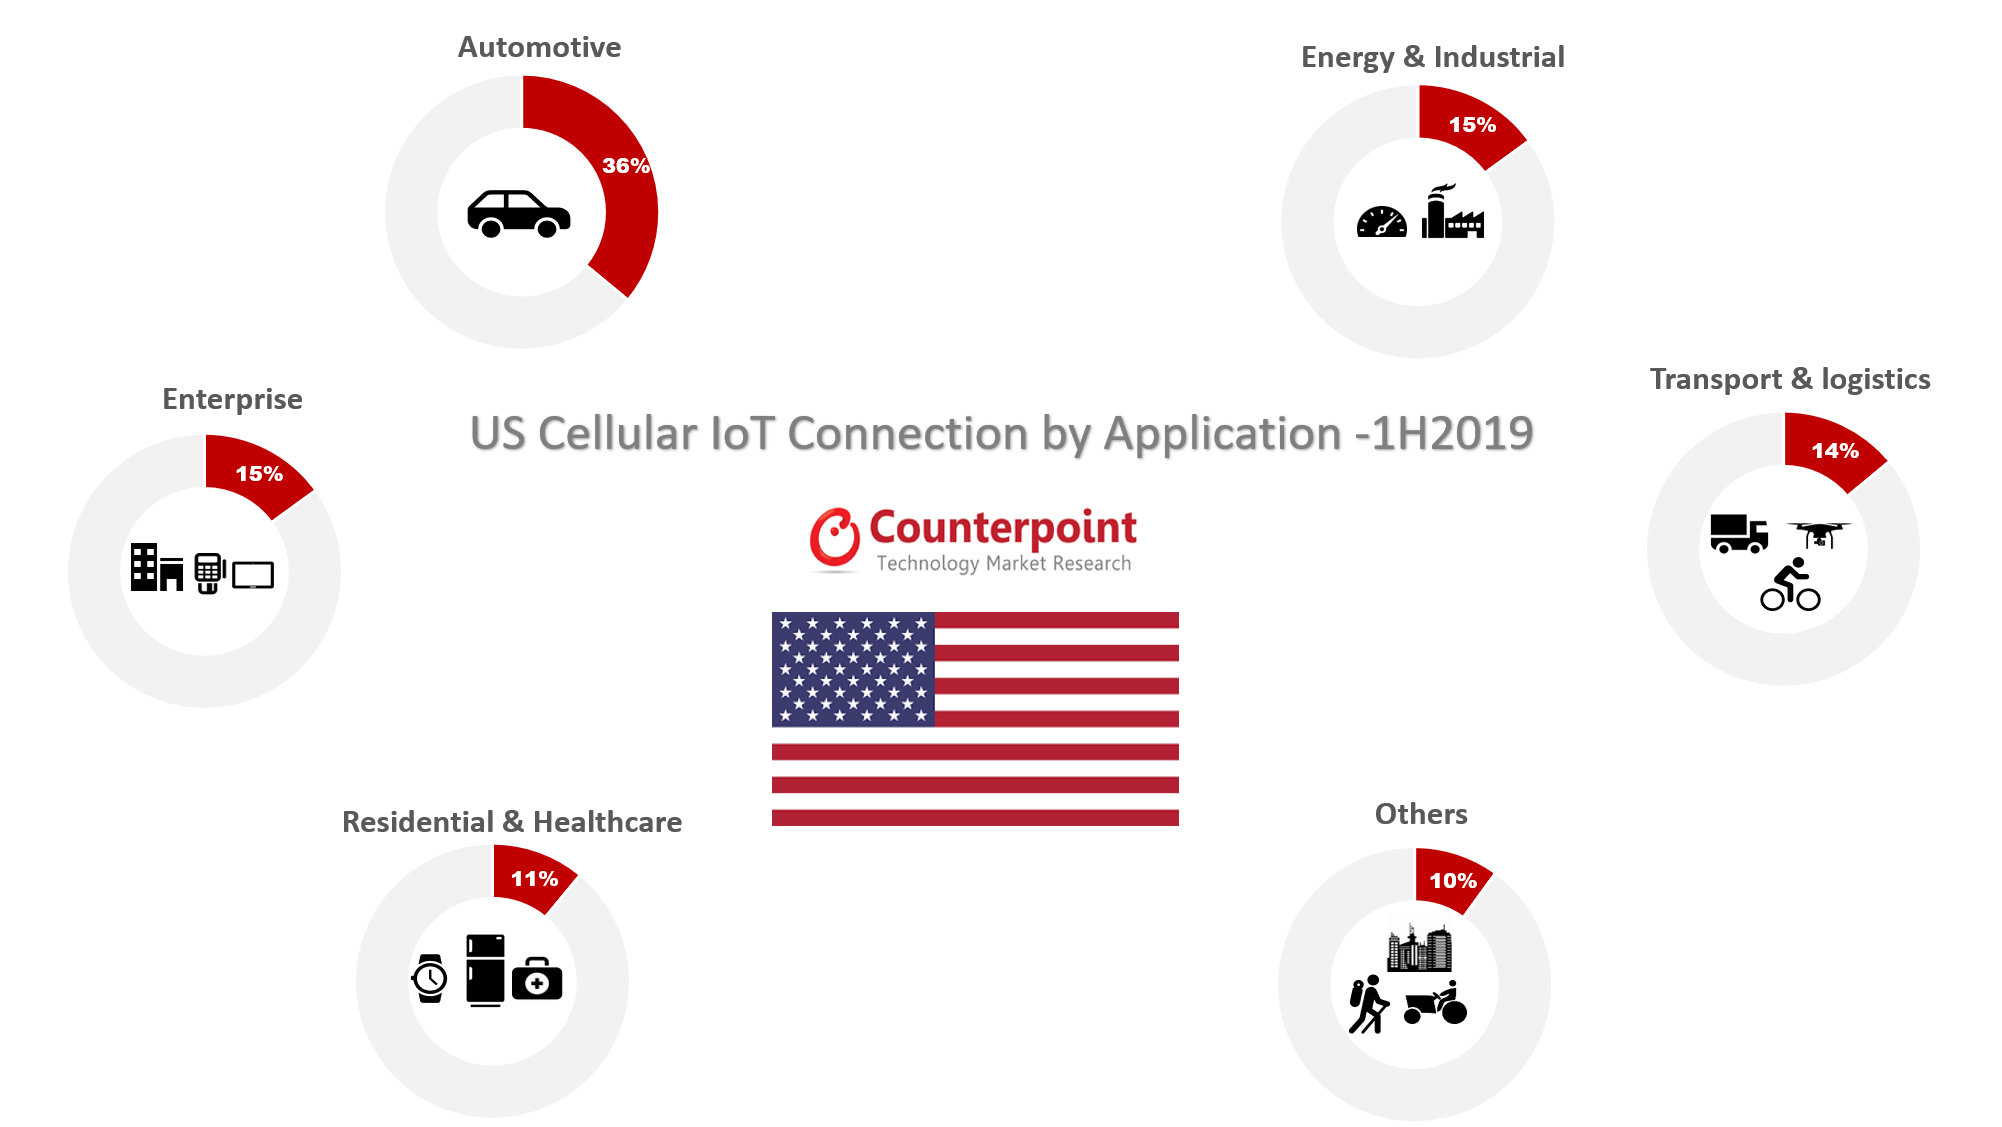 US Cellular IoT Connection by Application